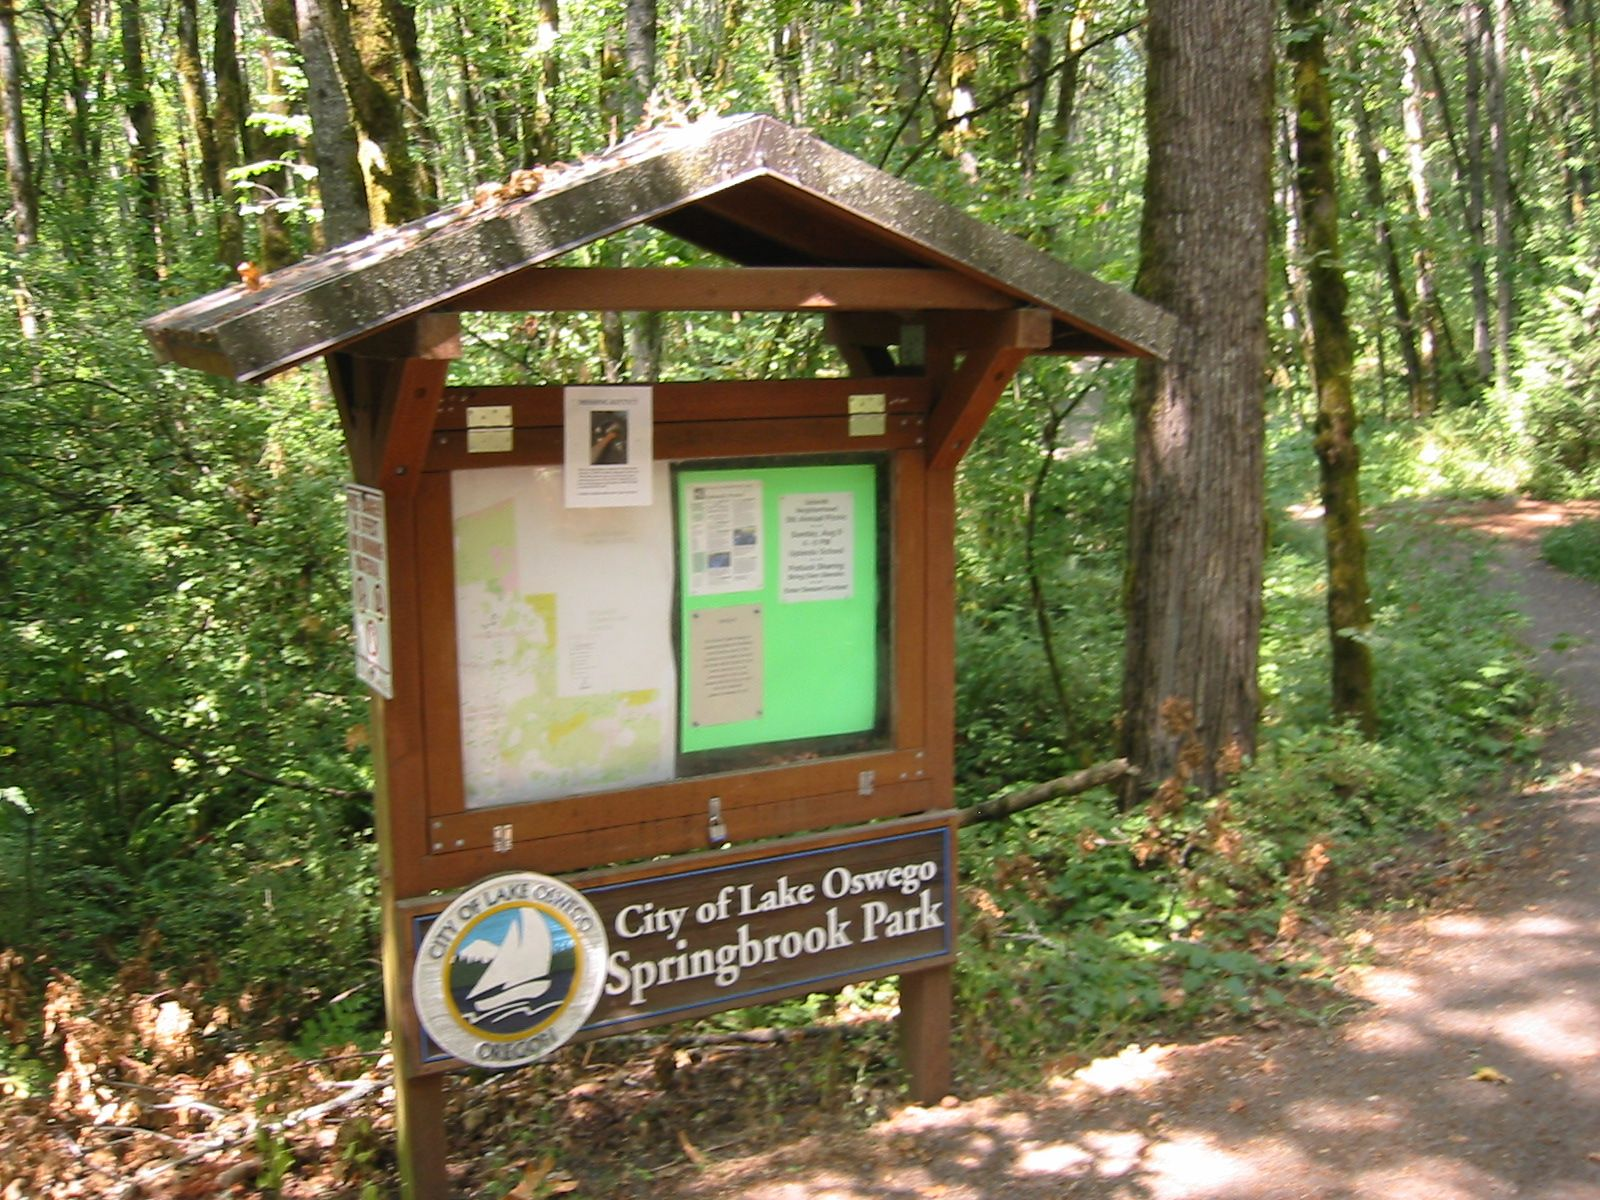 The information kiosk at springbrook park photo by for Garden kiosk designs